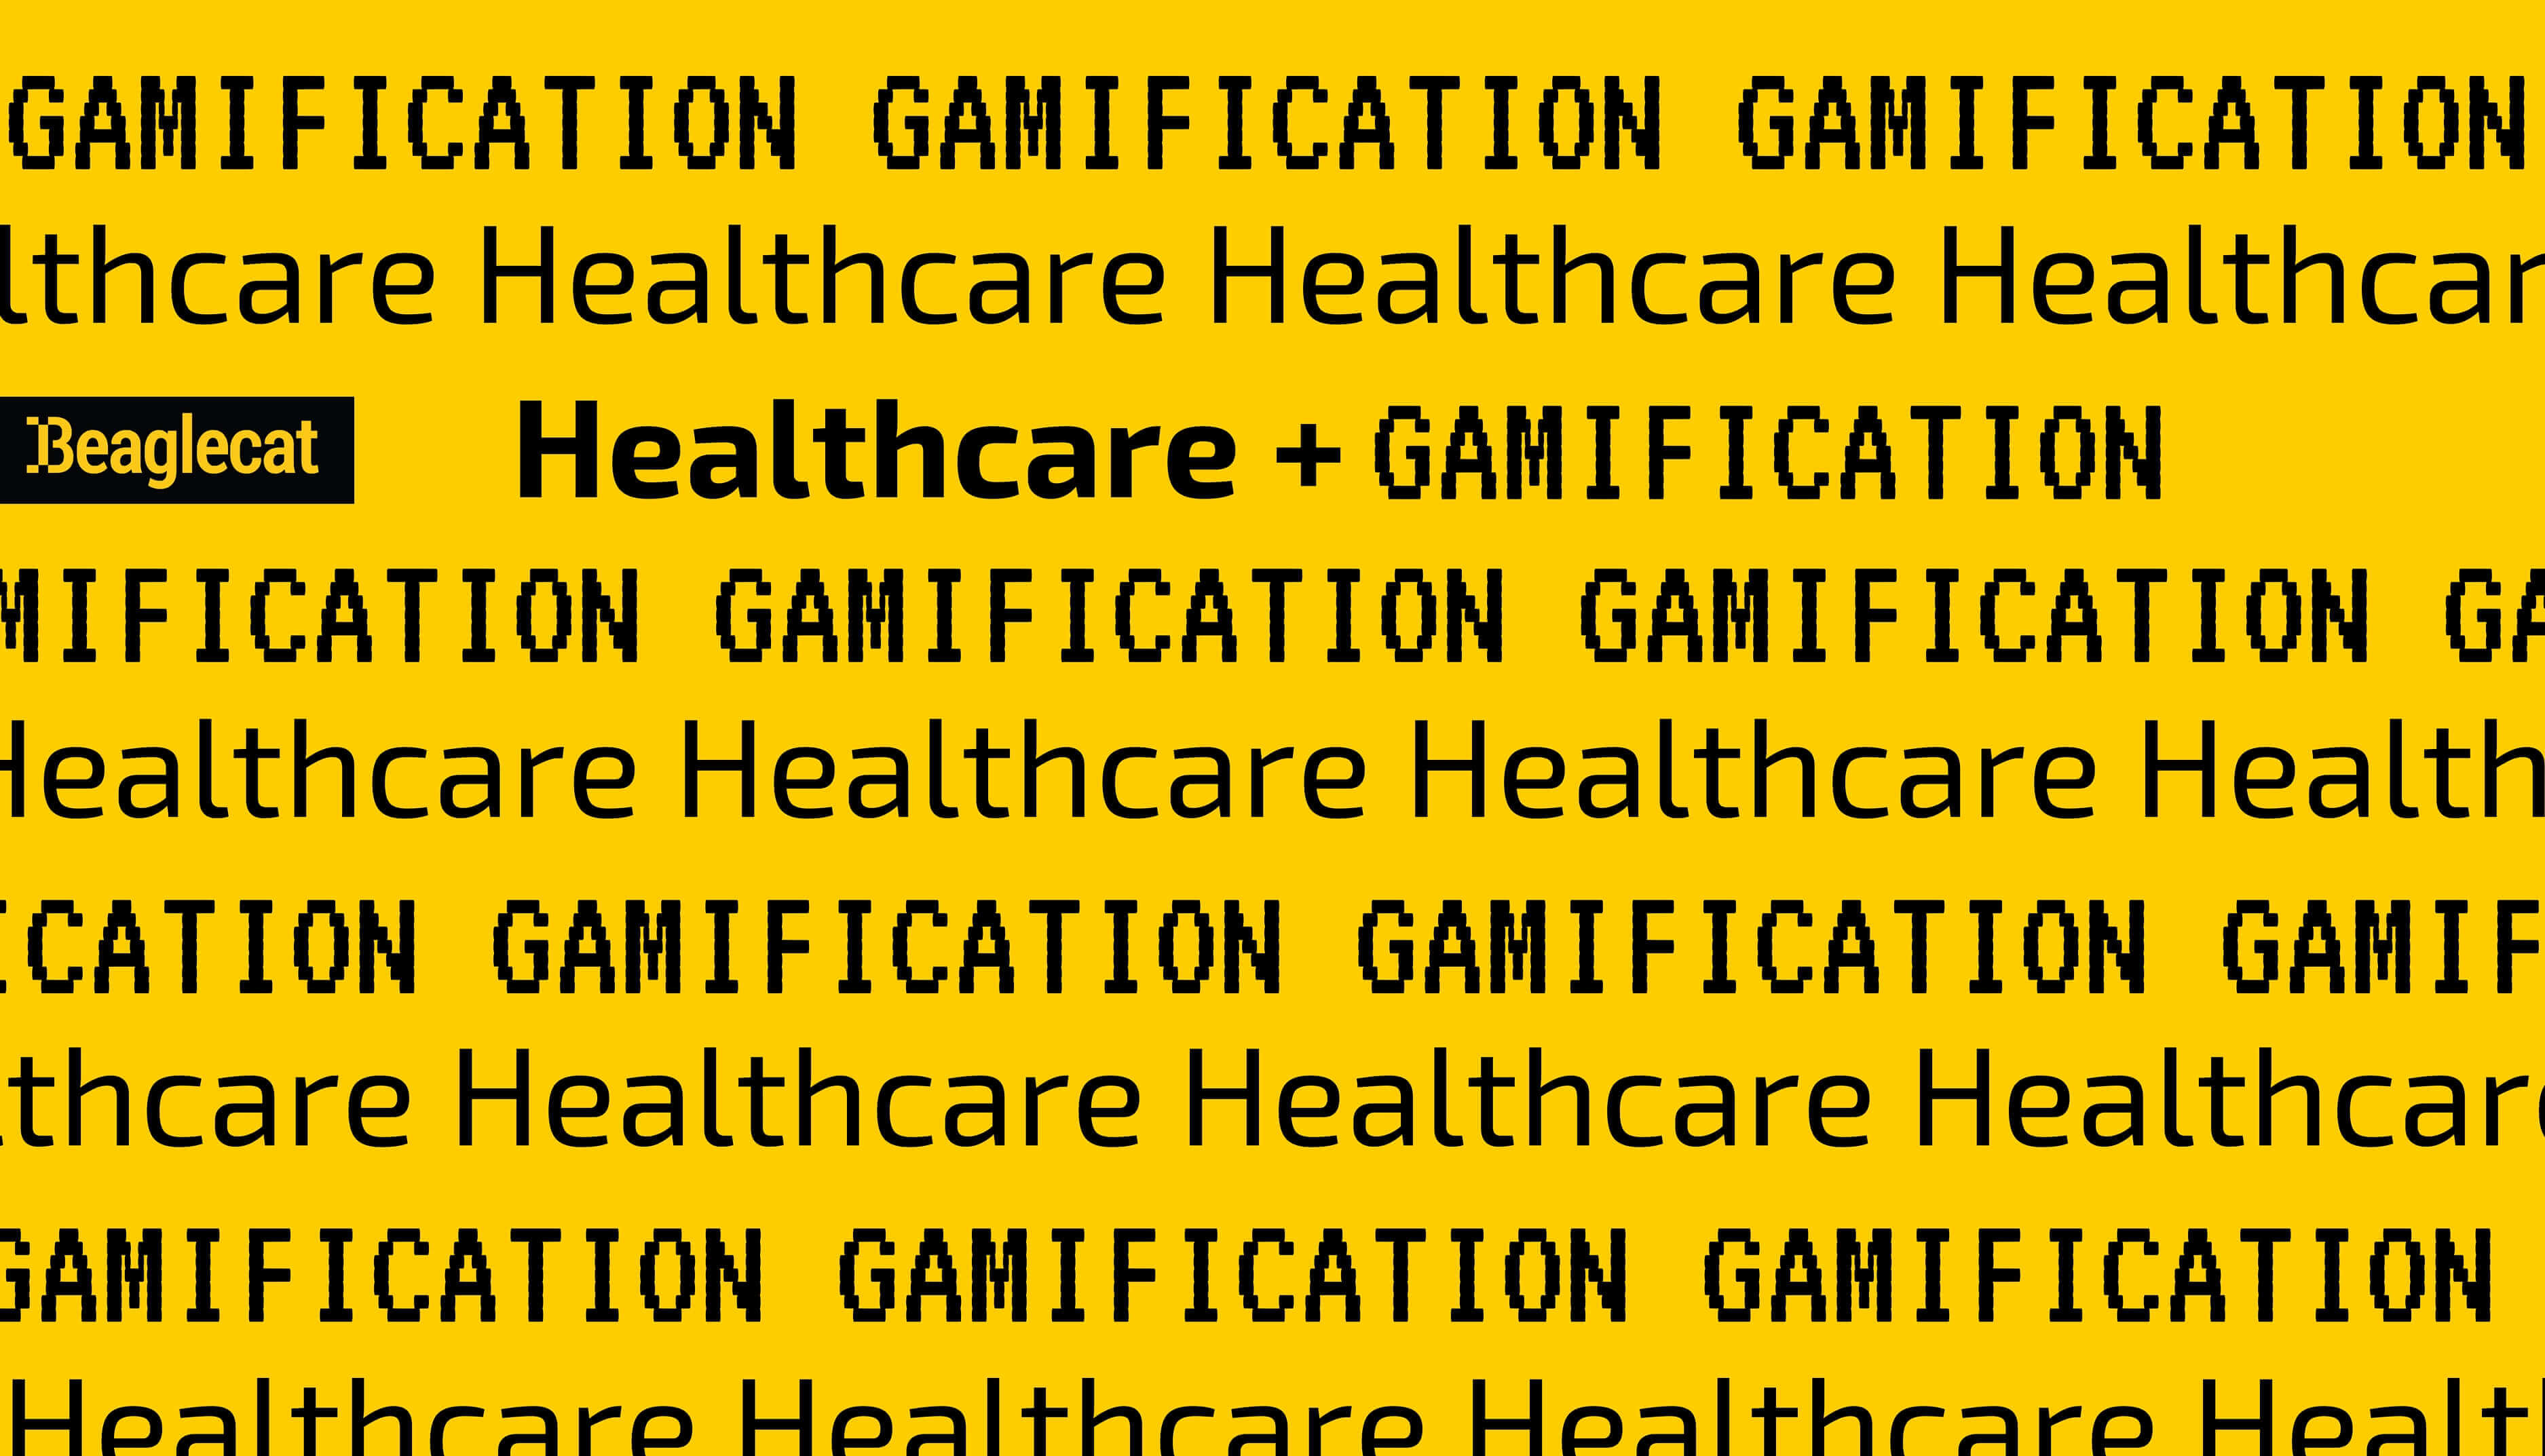 gamification_examples